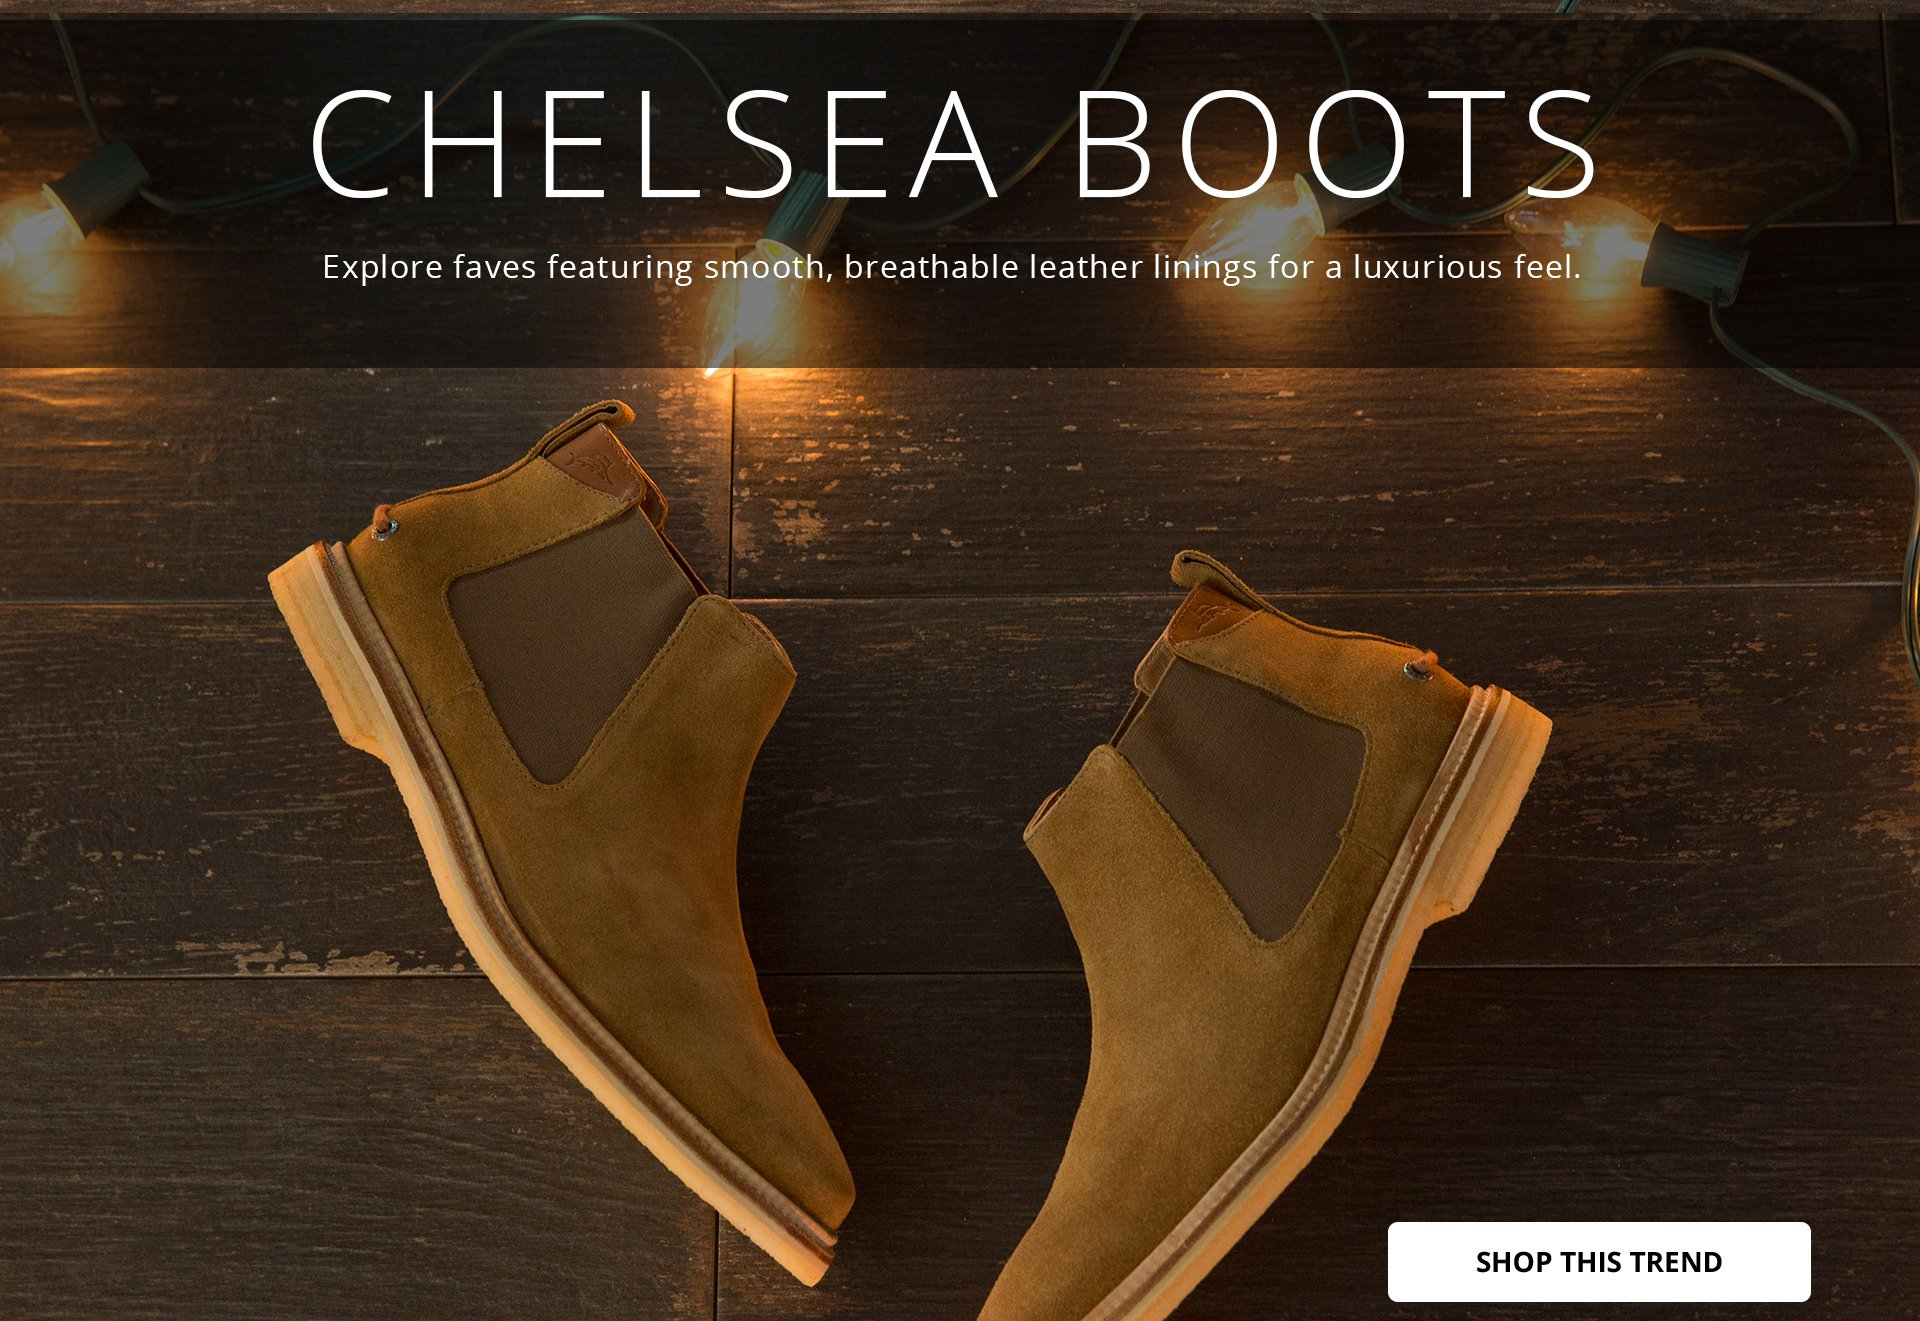 CHELSEA BOOTS: Explore faves featuring smooth, breathable leather linings for a luxurious feel. SHOP THIS TREND